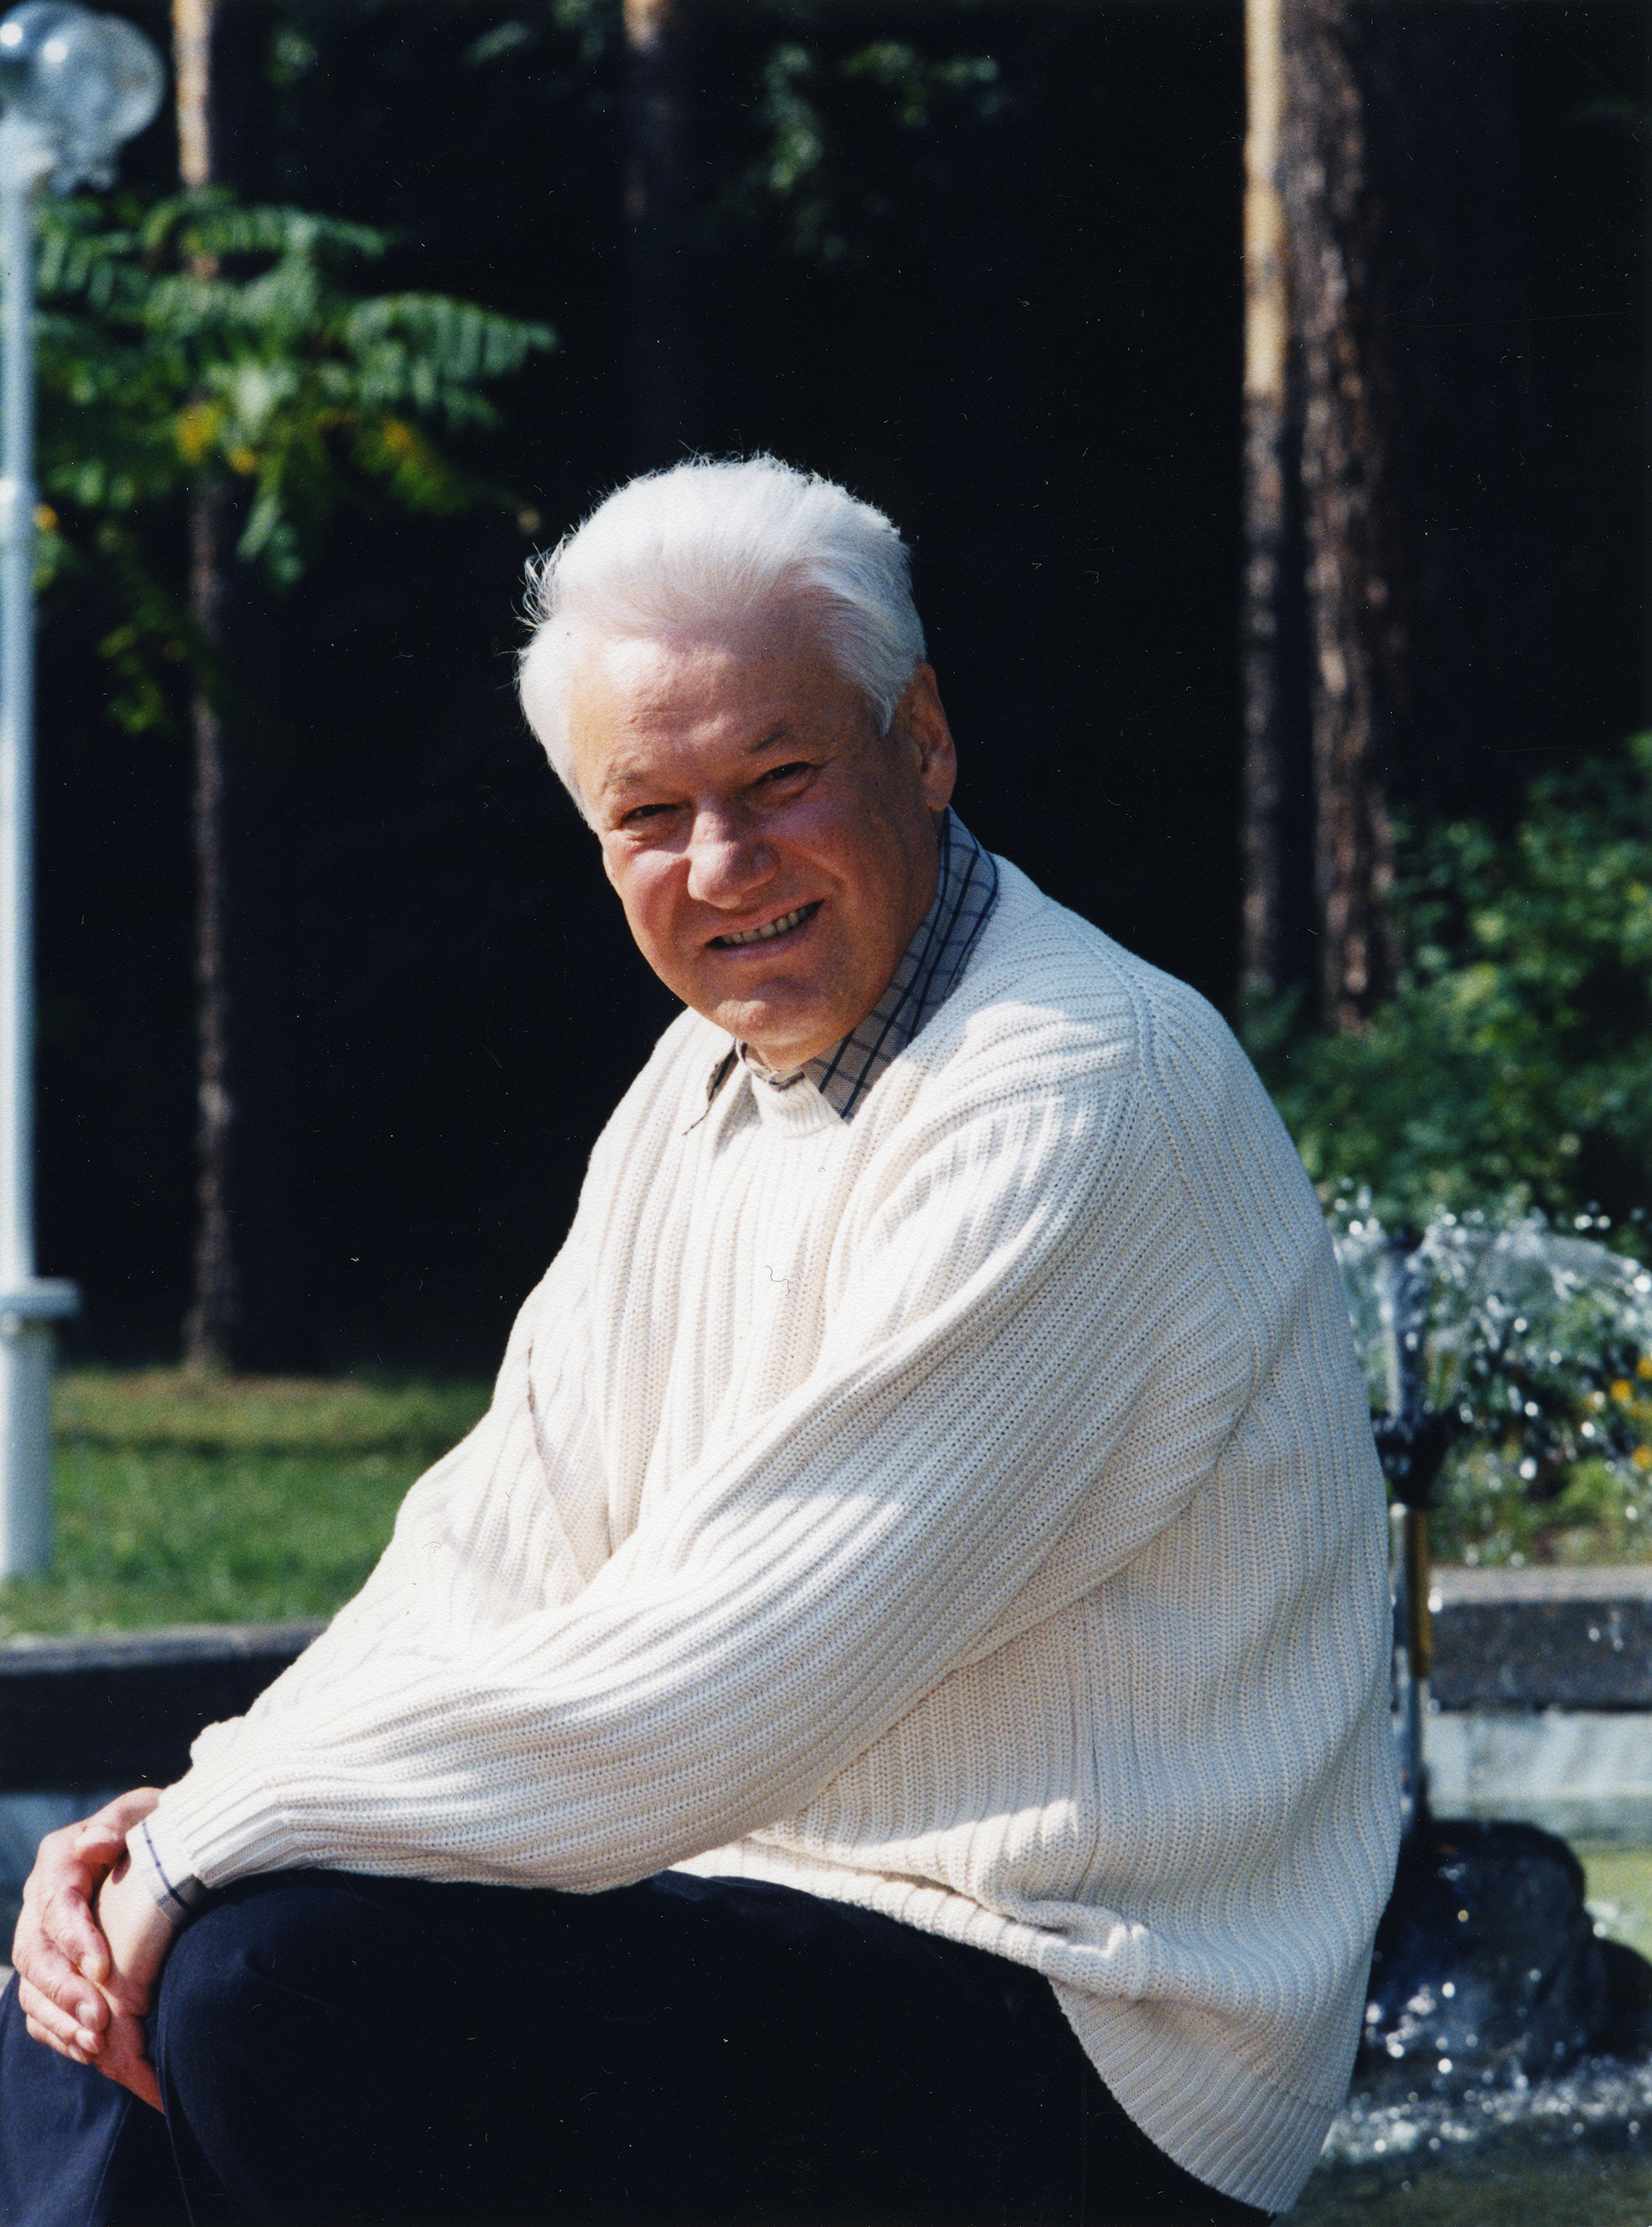 http://upload.wikimedia.org/wikipedia/commons/a/a9/Boris_Yeltsin.jpg